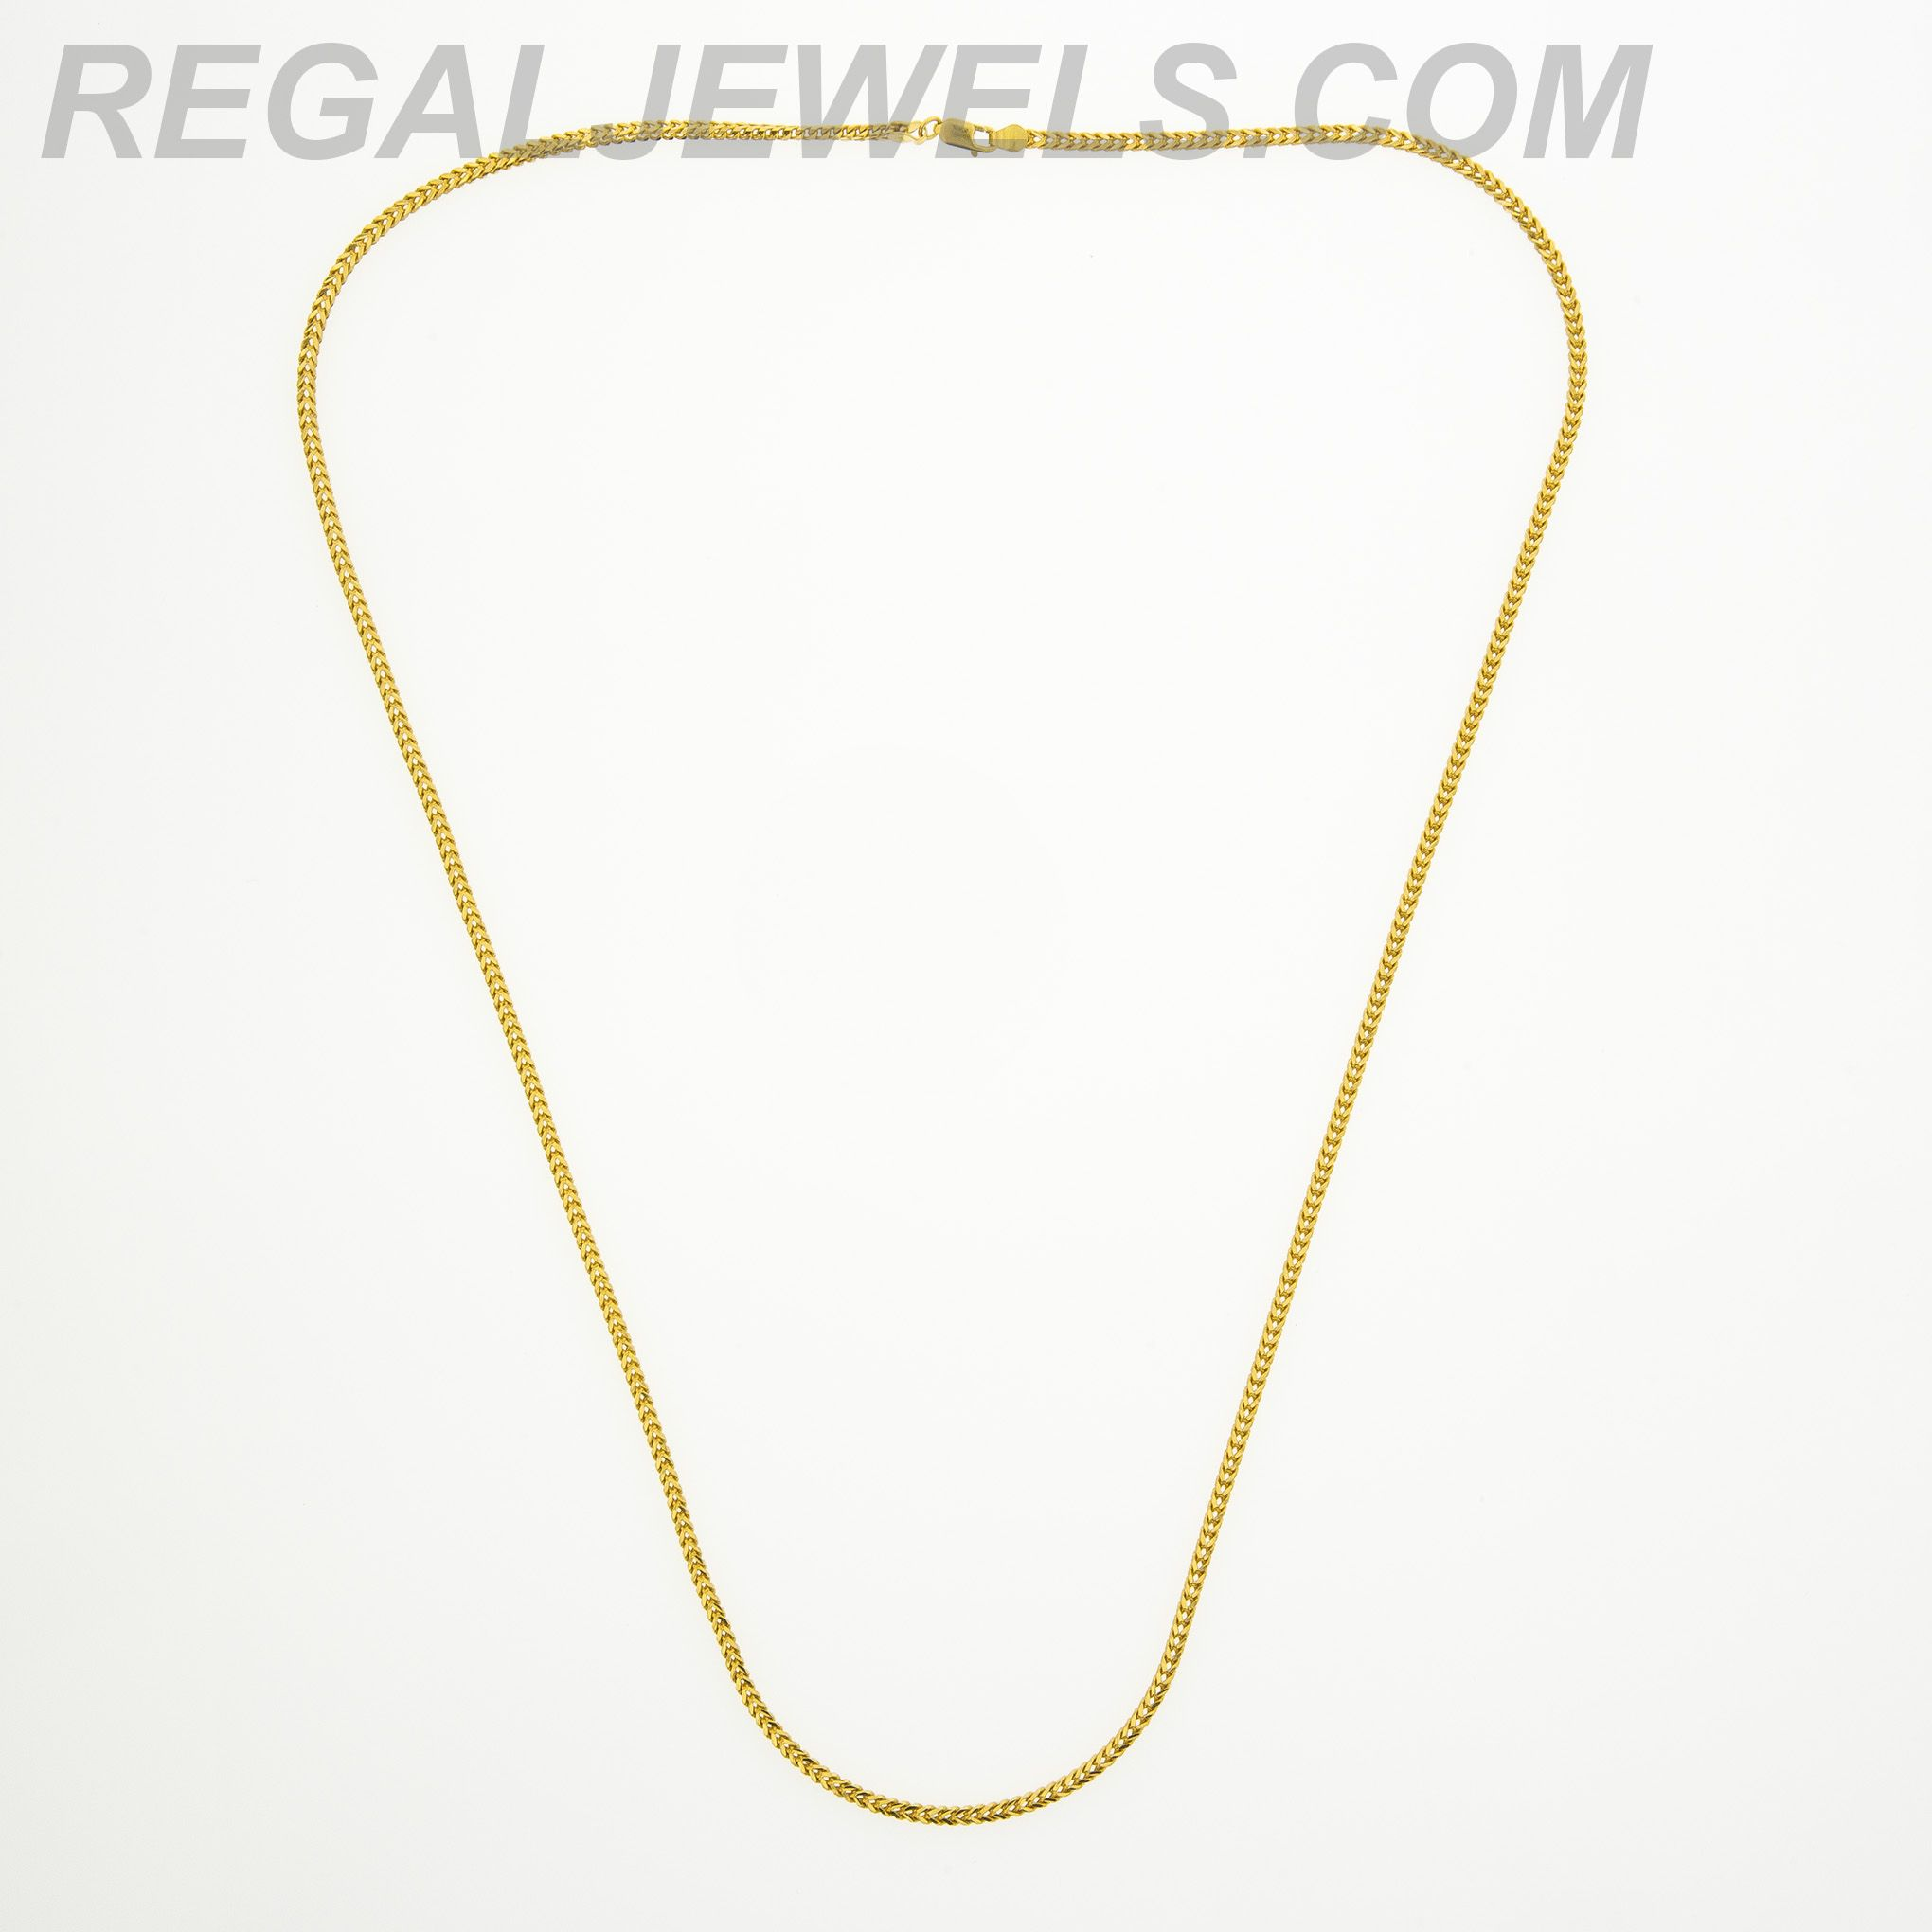 gregory plain unanodized llc anne gallery rope niobium maille mail dsc necklace copy chain shop necklacechoker